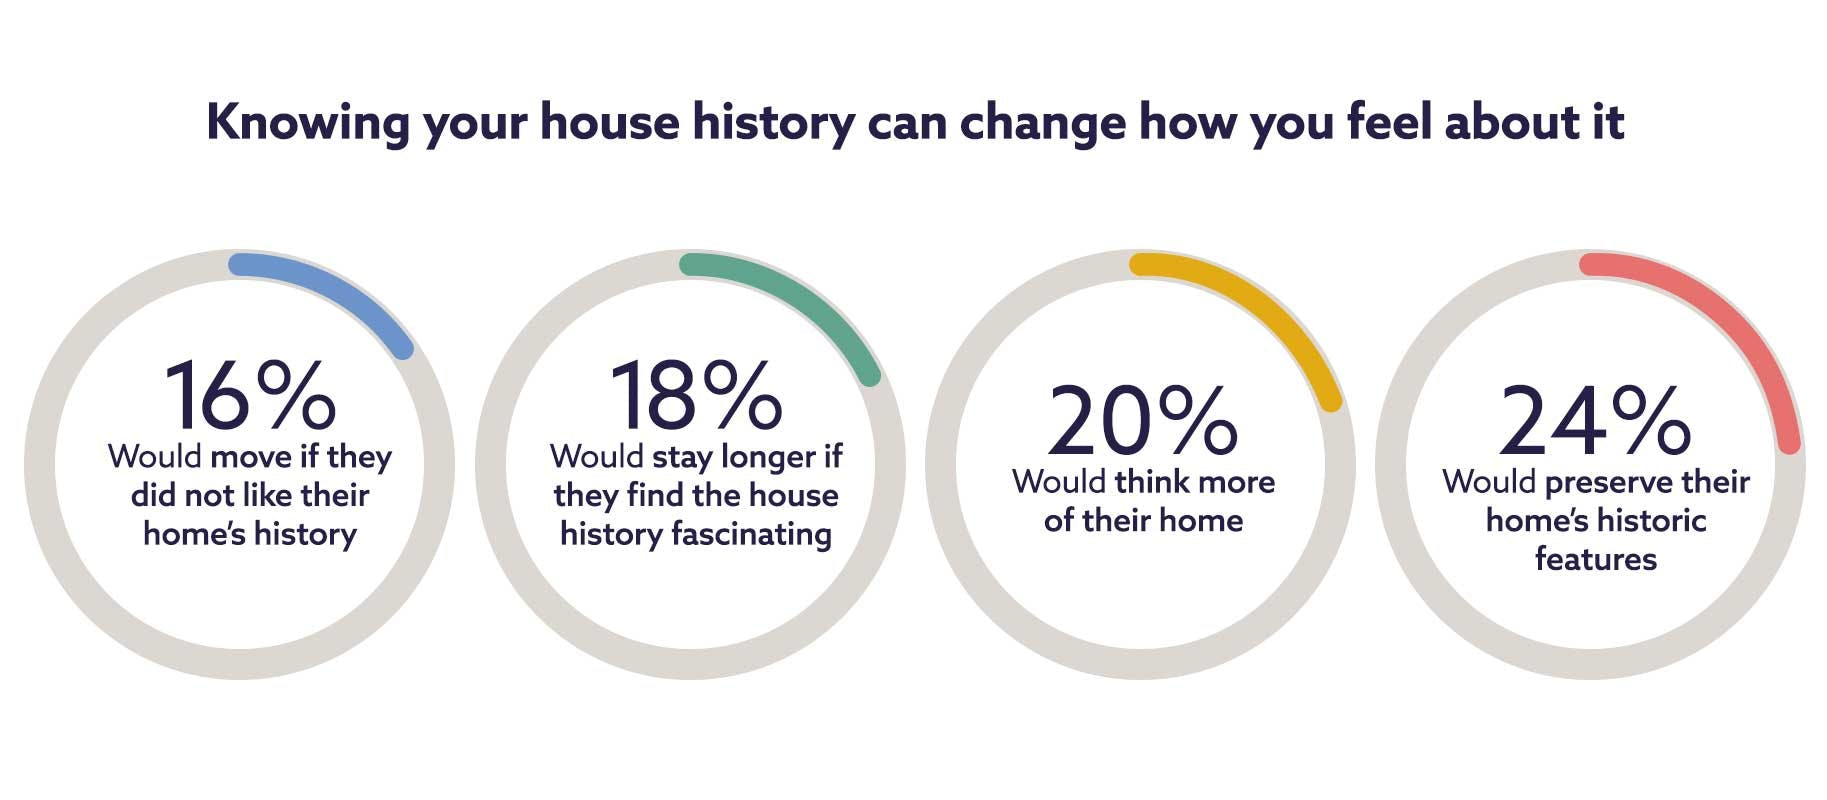 Does your home's history change how you feel about it?